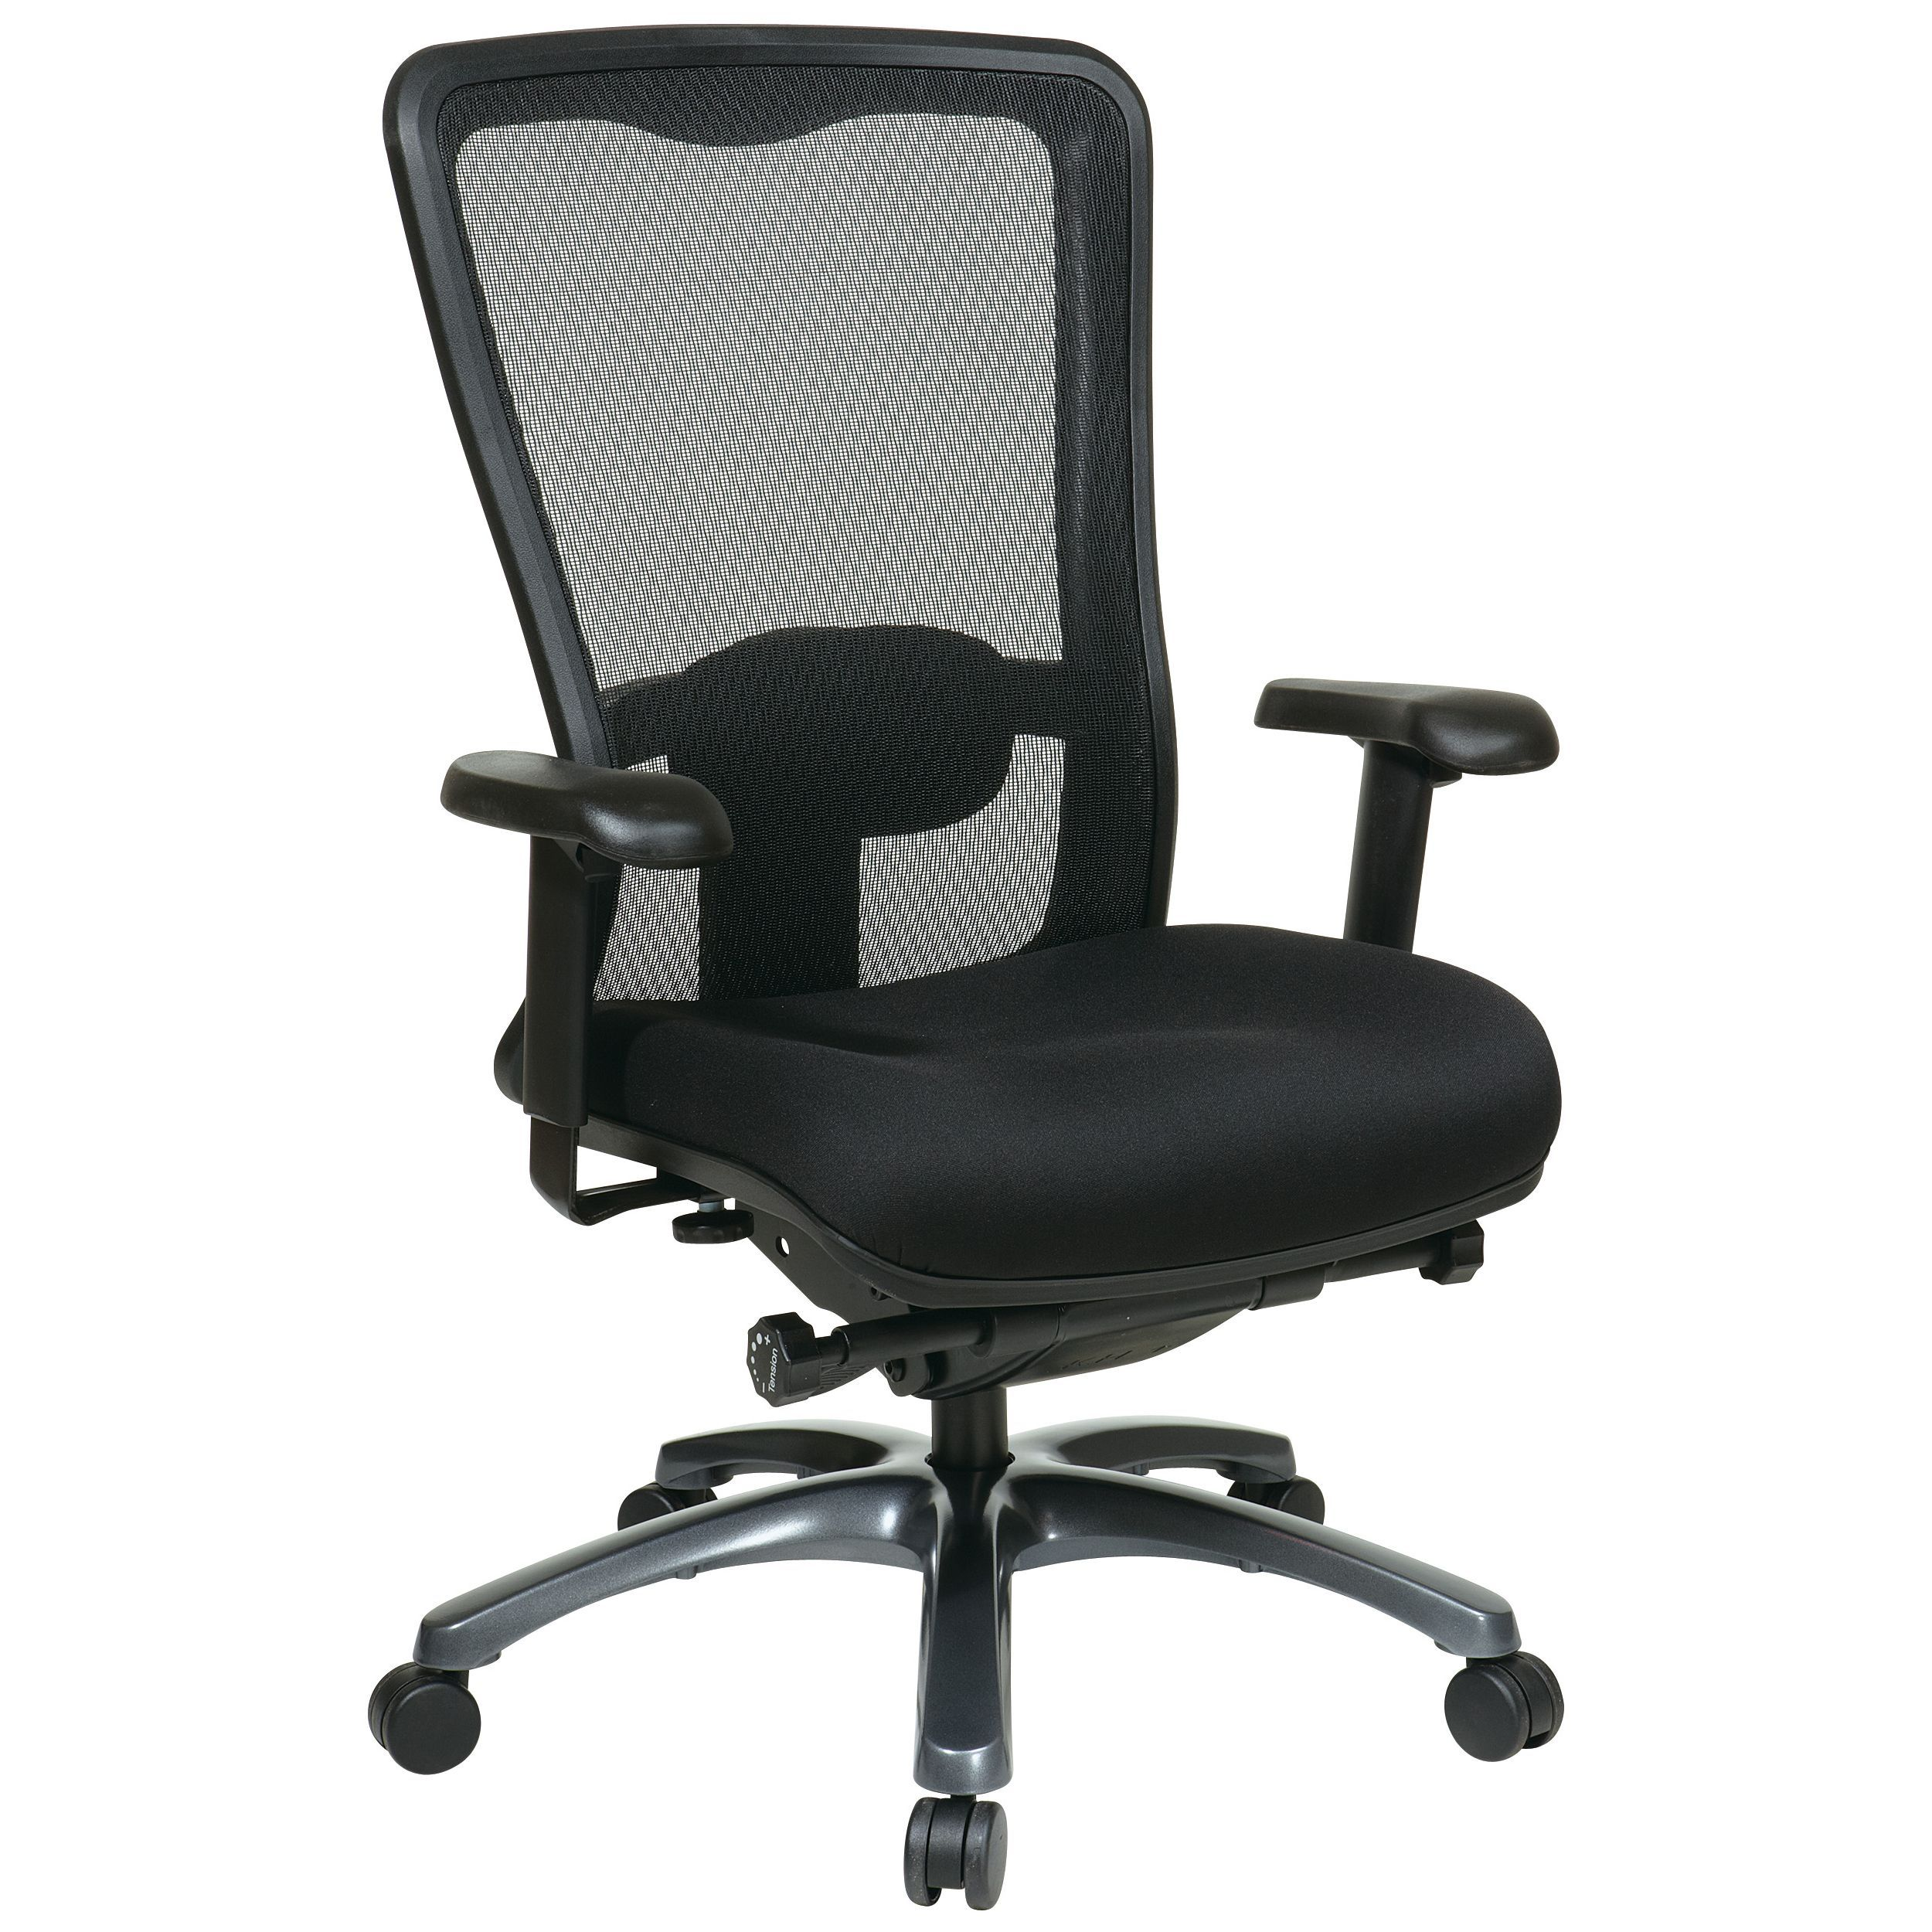 Office Chair With Adjustable Arms Complete Your Home Offices Makeover With This Ergonomic Office